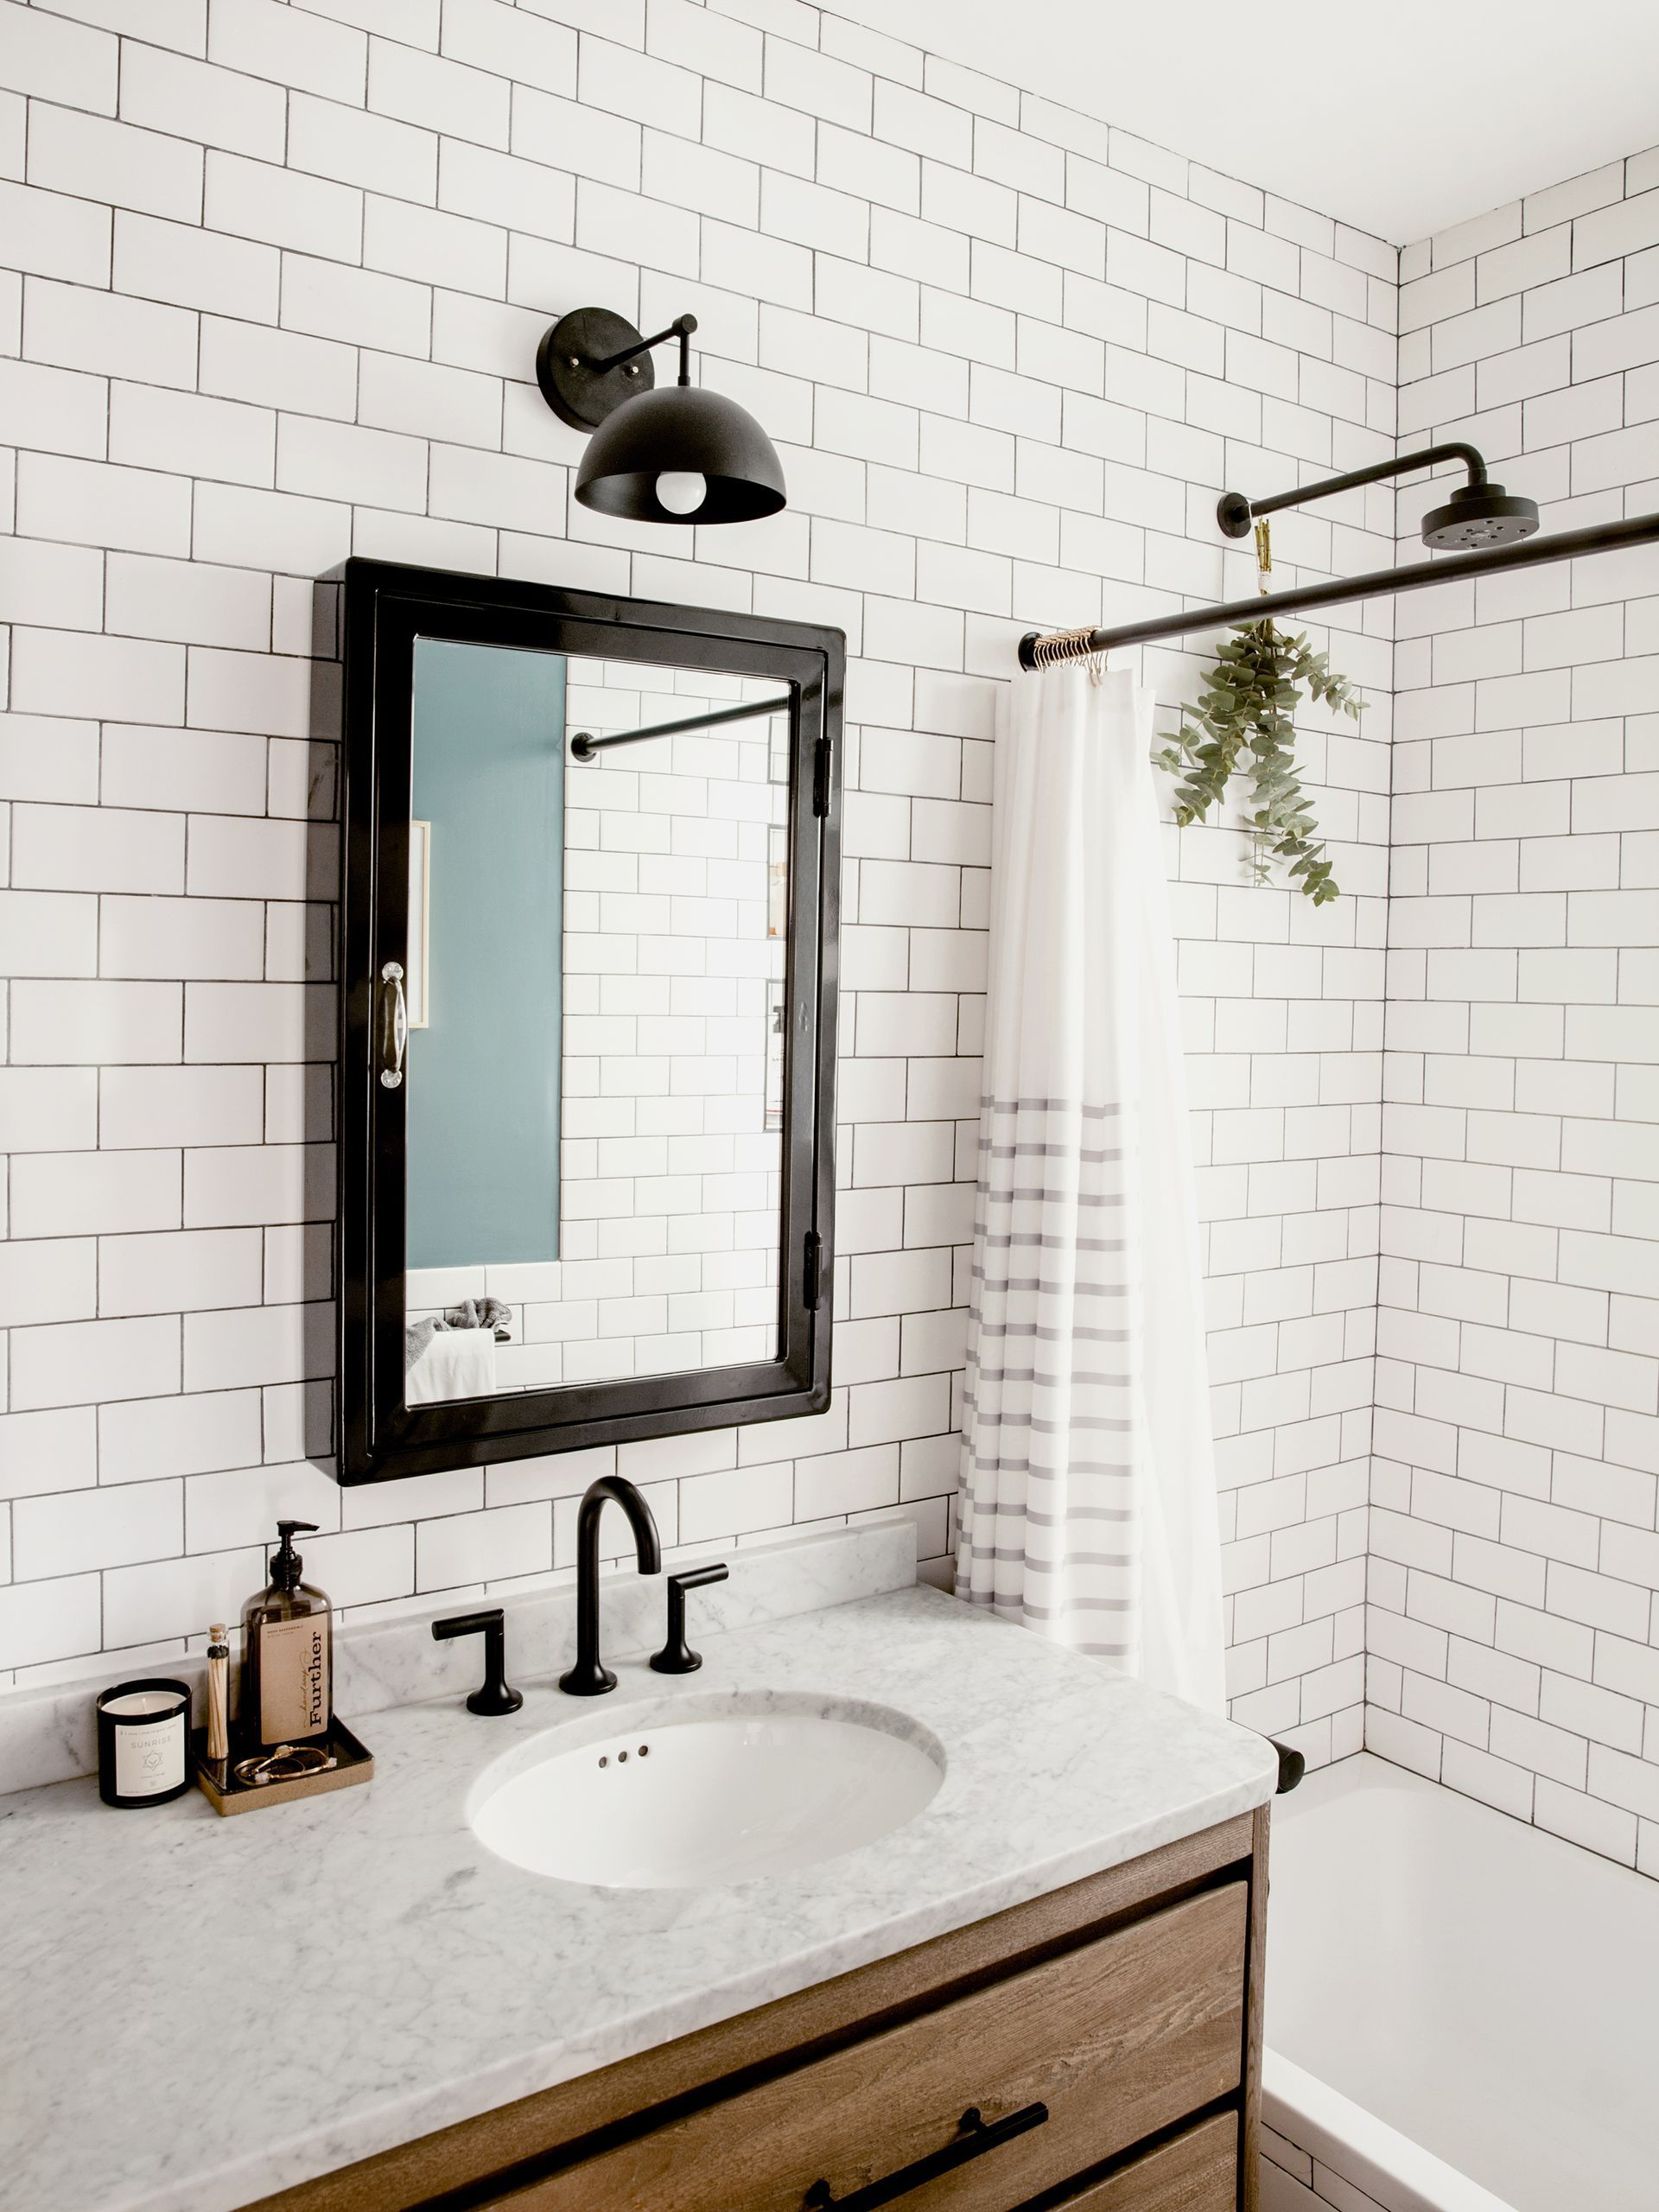 A Bathroom Has White Subway Tile And Dark Grout A Black And Walnut Vanity Has Black Drawer Pull Bathroom Light Fixtures Bathroom Black Fixtures Black Bathroom White walnut bathroom remodel